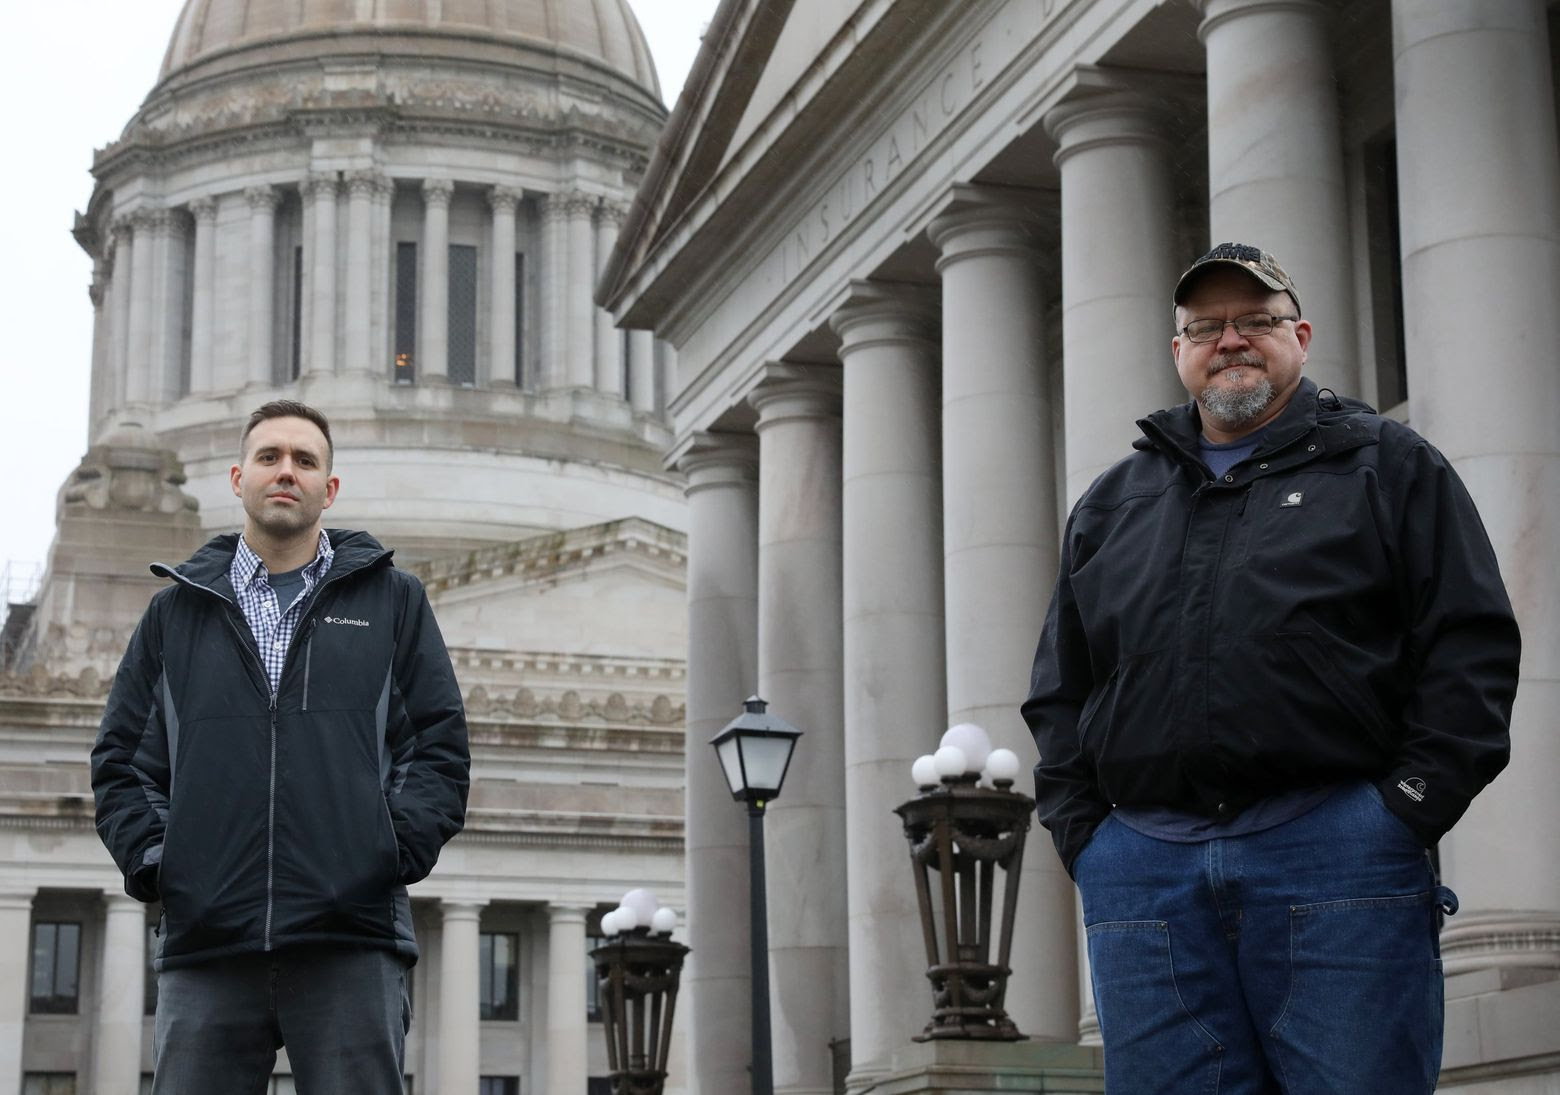 Their daughters' rare disease brought two dads together. Now they're fighting for early genetic testing in Washington state.